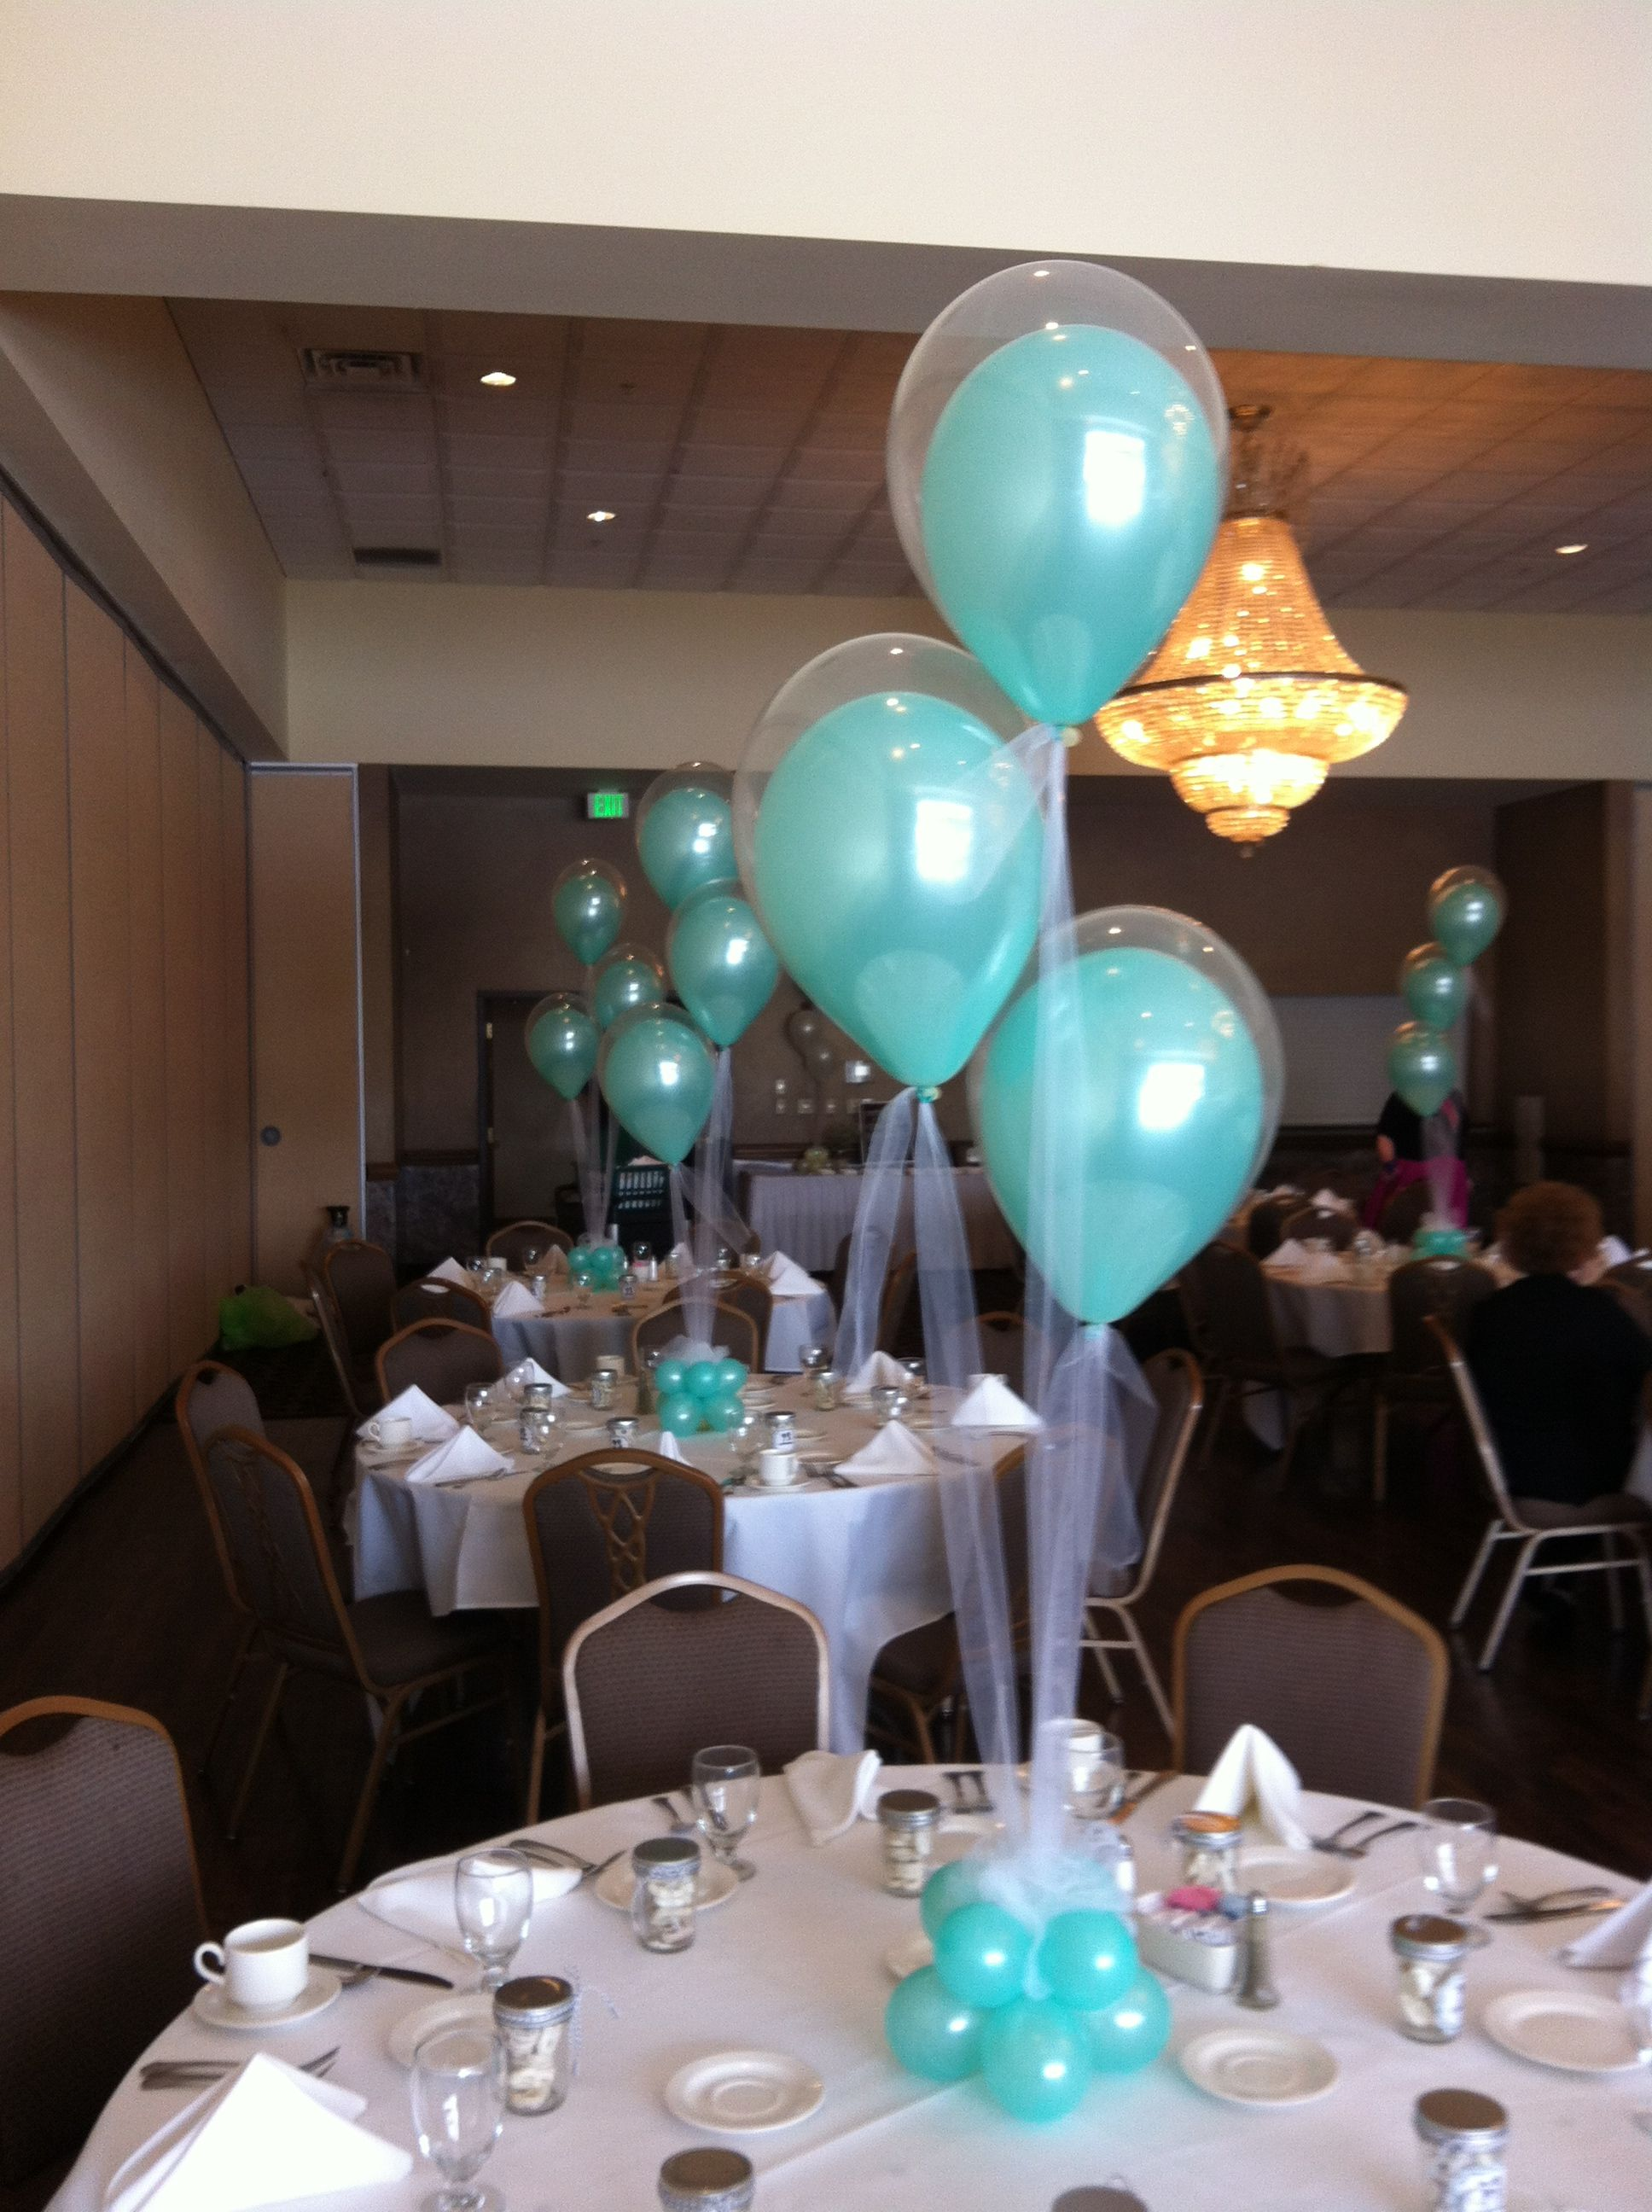 Wedding decoration ideas with balloons  Double stuffed latex on tulle for a shower Great idea for any party